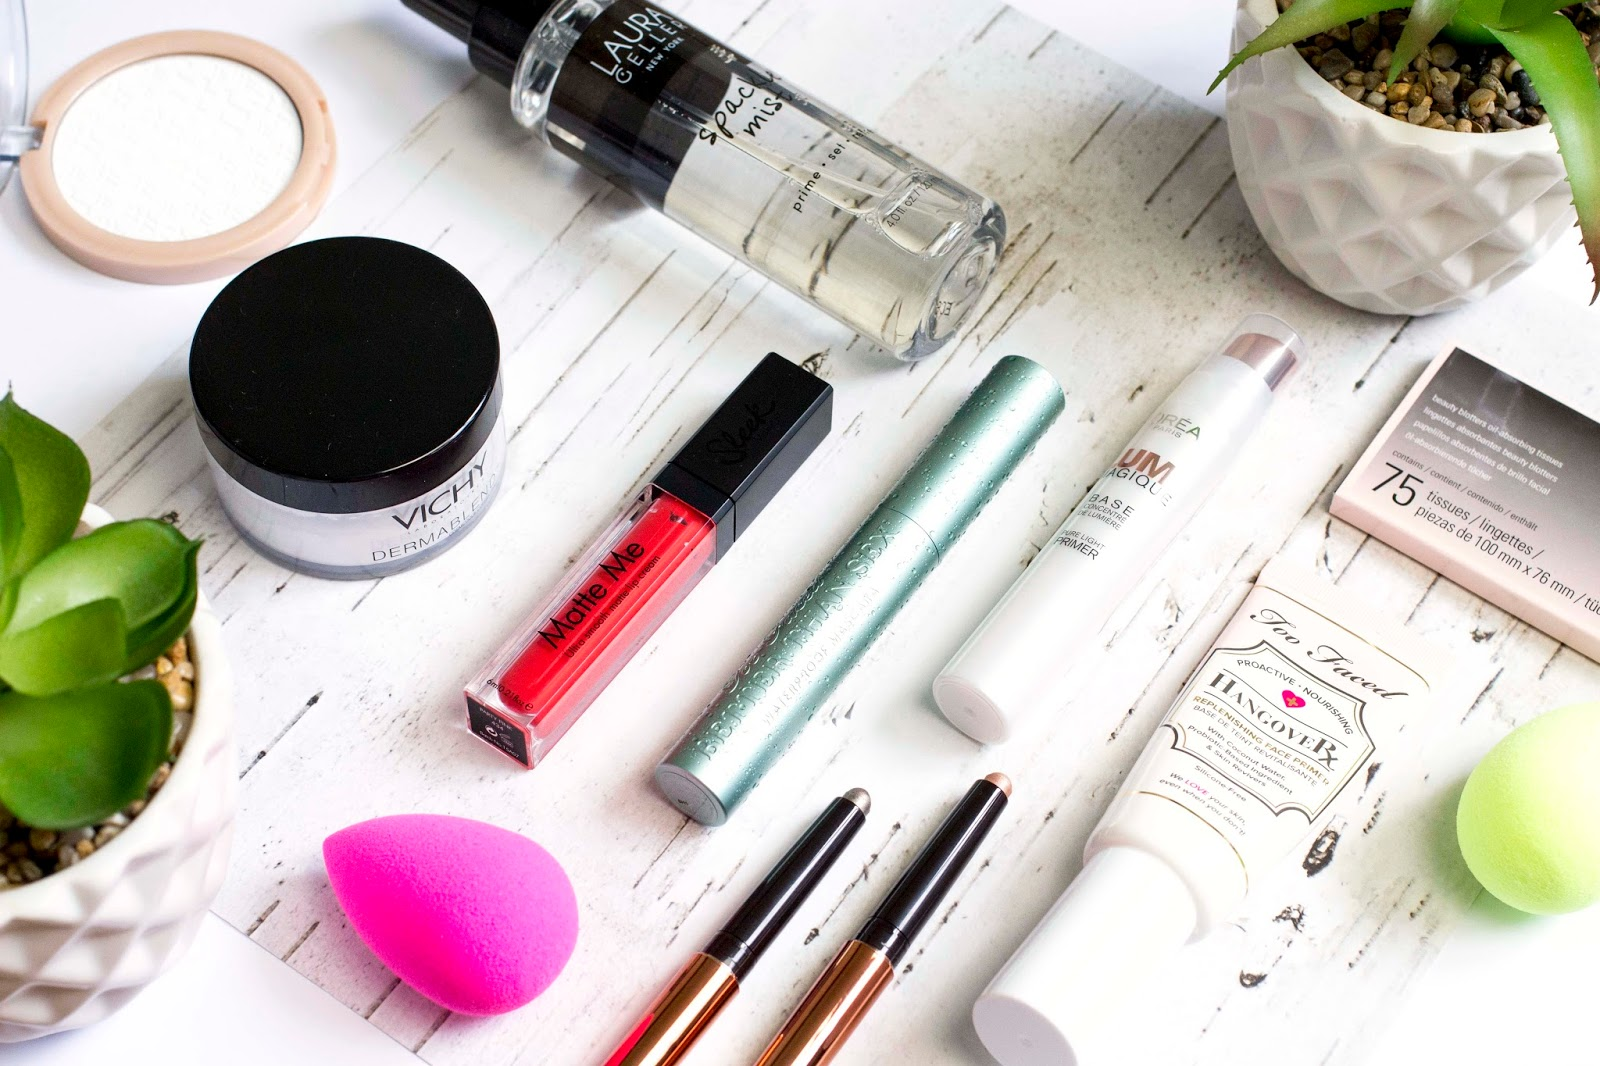 Let's start right at the beginning and talk about makeup preparation! Makeup that sticks around all starts right at the base and it's important to give it a ...